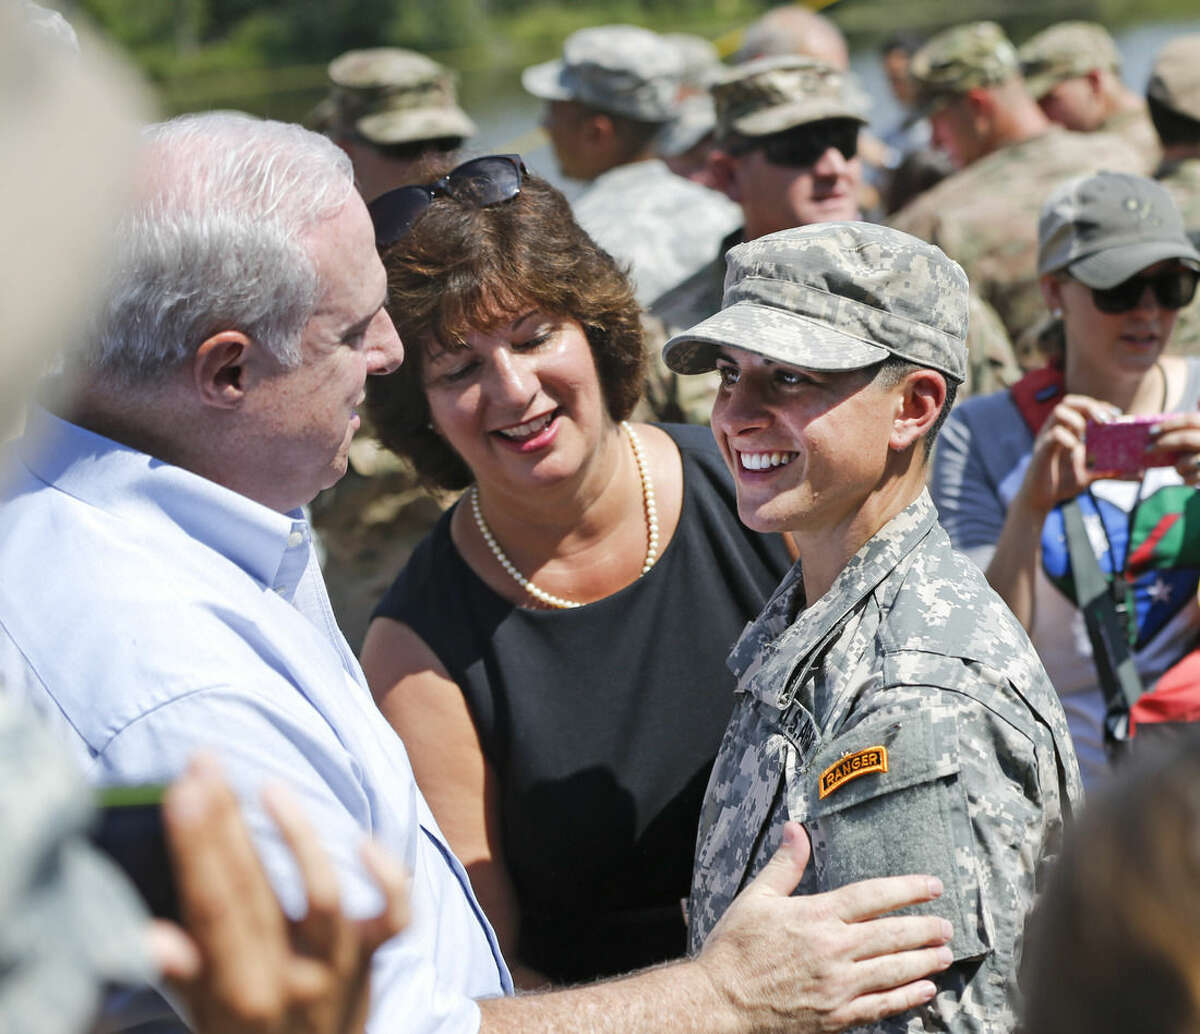 """U.S. Army First Lt. Shaye Haver, right, smiles after receiving her """"Ranger Tabs"""" from an unidentified man after an Army Ranger school graduation ceremony Friday, Aug. 21, 2015, at Fort Benning, Ga. Haver and Capt. Kristen Griest became the first female graduates of the Army's rigorous Ranger School, putting a spotlight on the debate over women in combat. (AP Photo/John Bazemore)"""